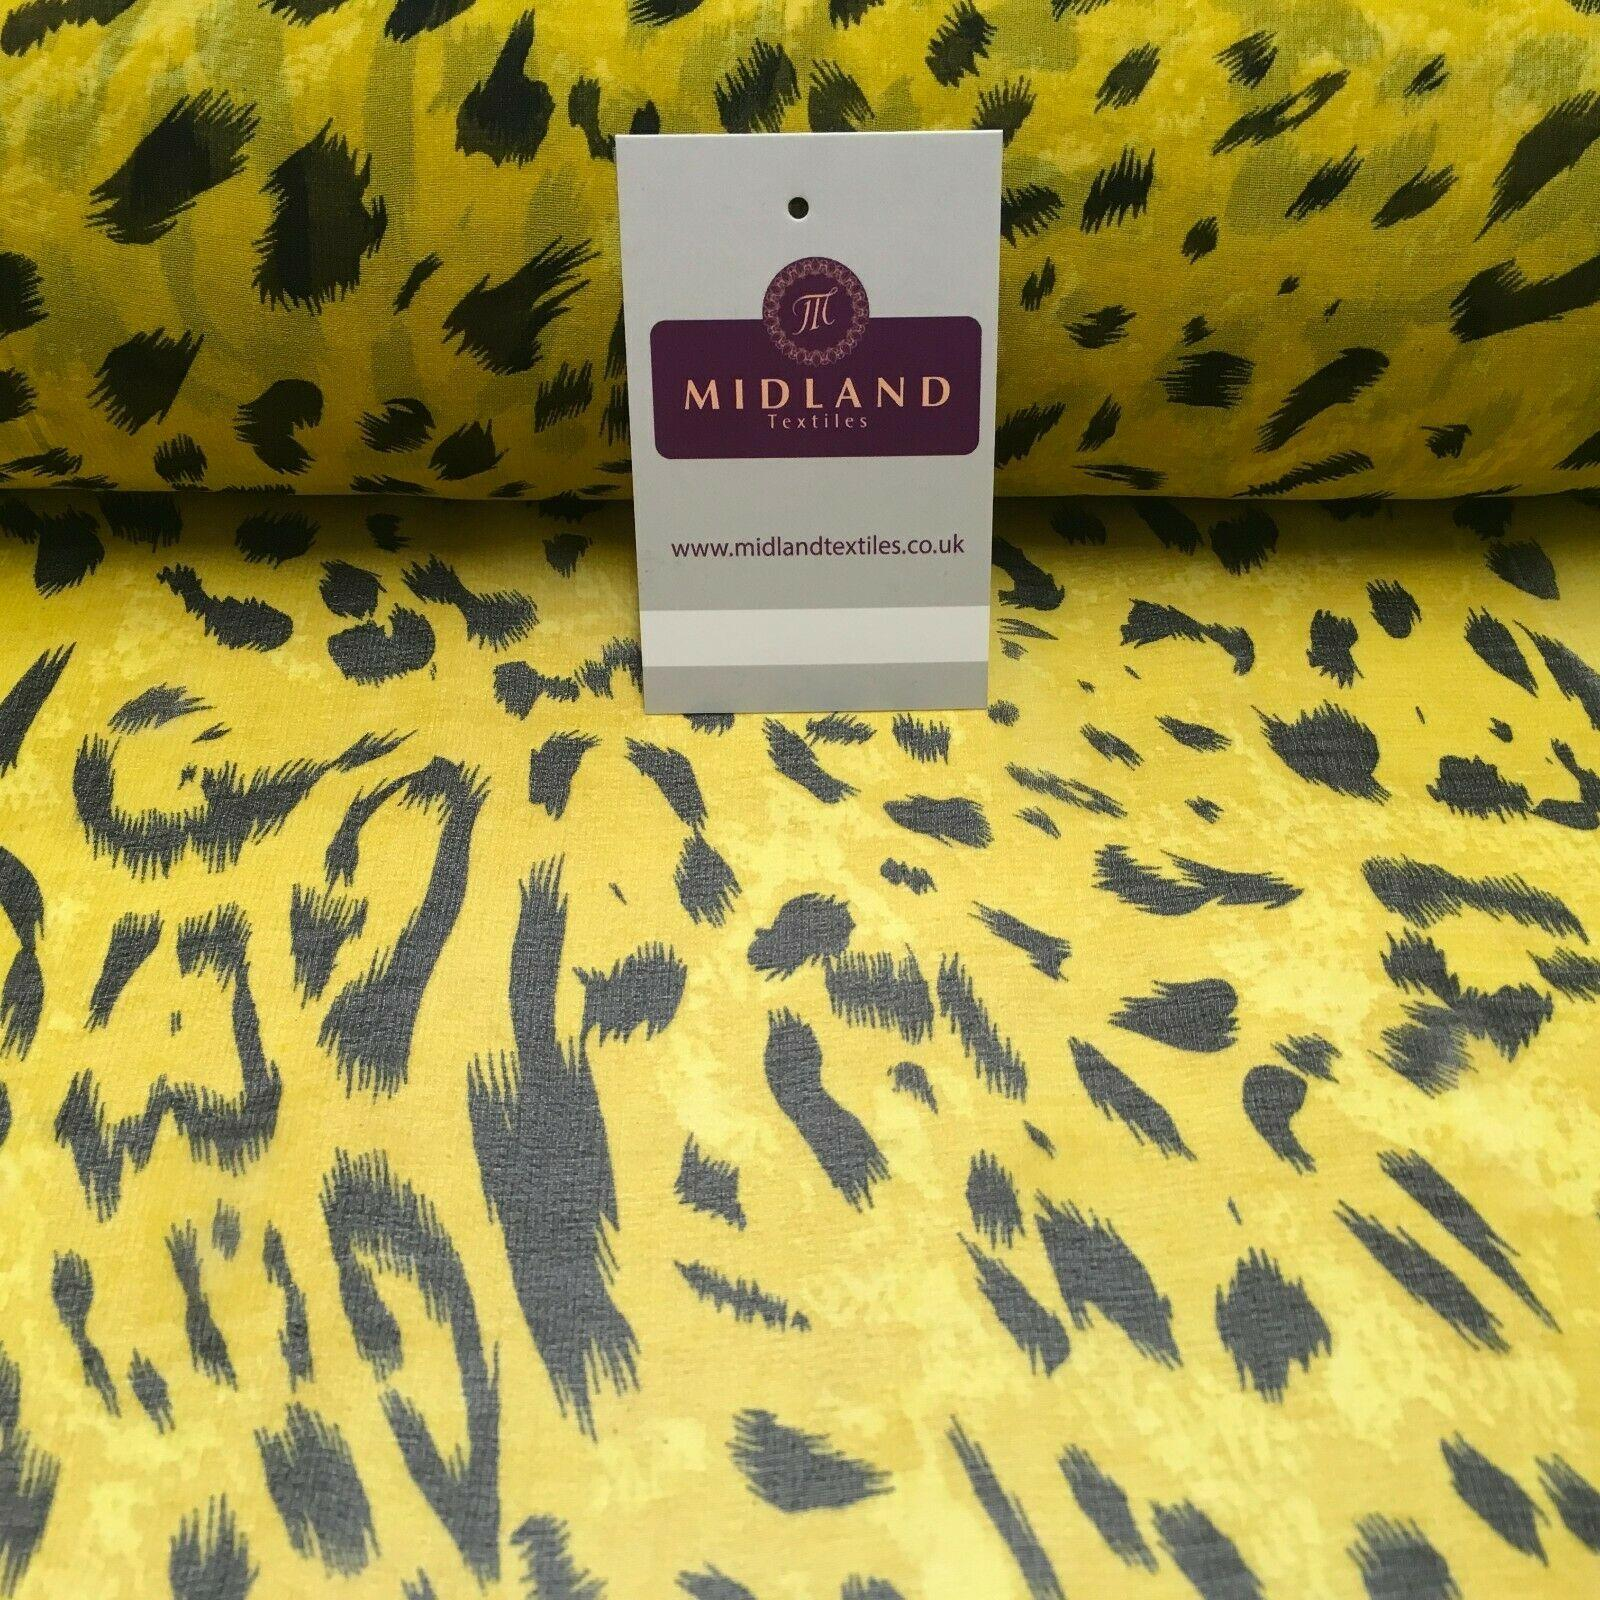 Tiger Gold Animal Printed Crepe chiffon Dress Fabric 150 cm MK1190-29 Mtex